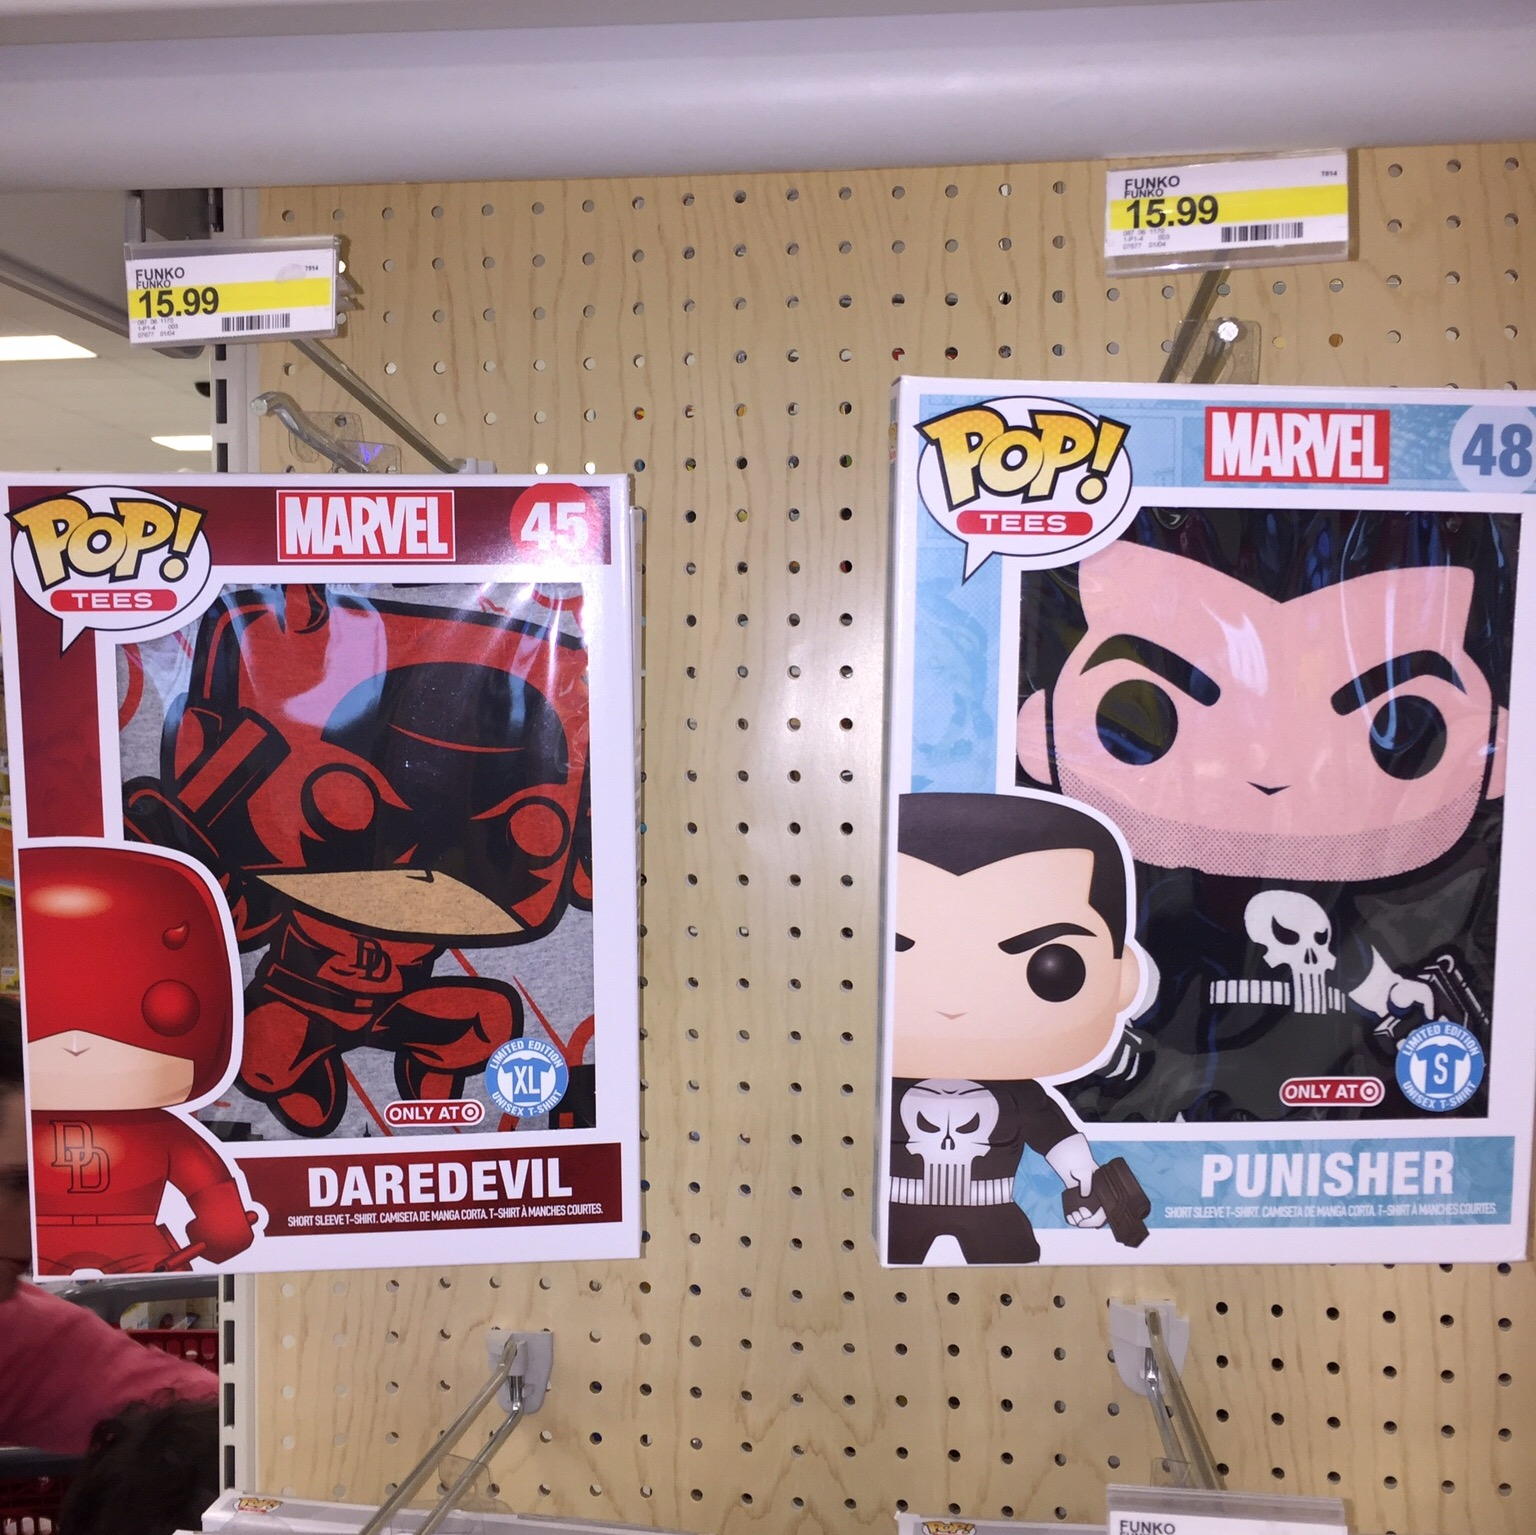 Target Work Shirts The Blot Says Target Exclusive Daredevil And The